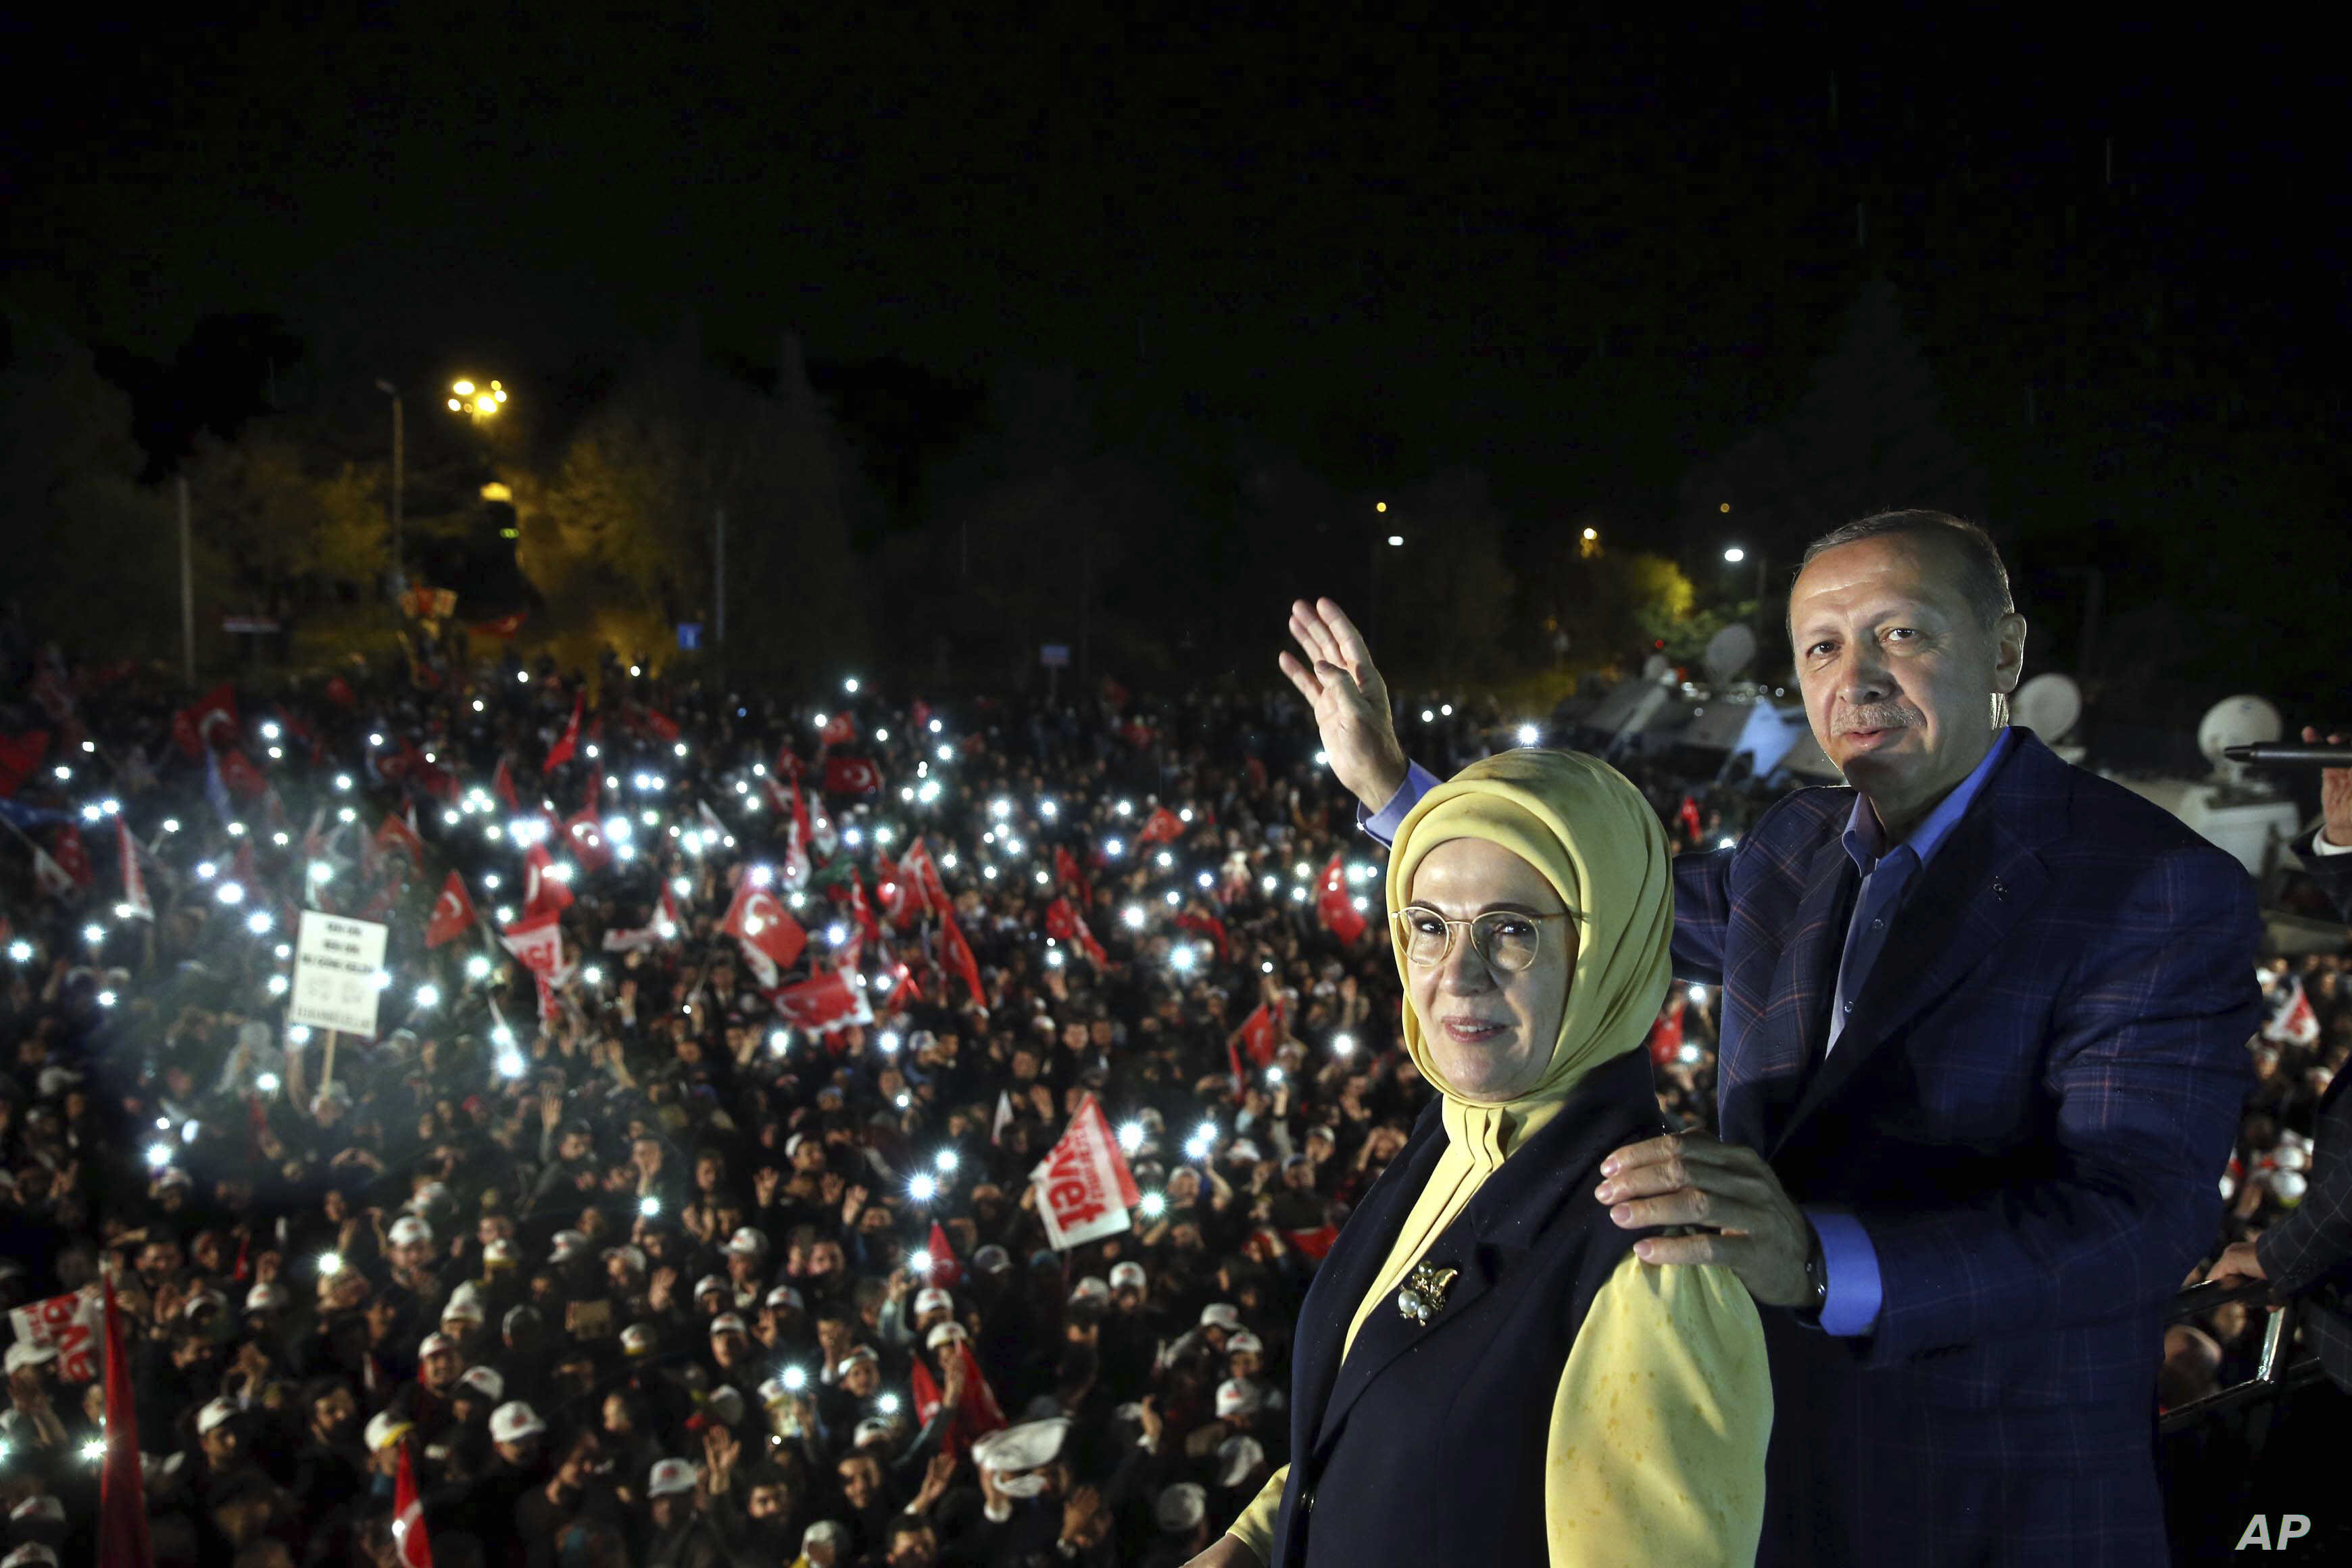 Turkey's President Recep Tayyip Erdogan and his wife Emine Erdogan pose for photos with cheering supporters in the background after unofficial referendum results were announced, in Istanbul, late Sunday, April 16, 2017.